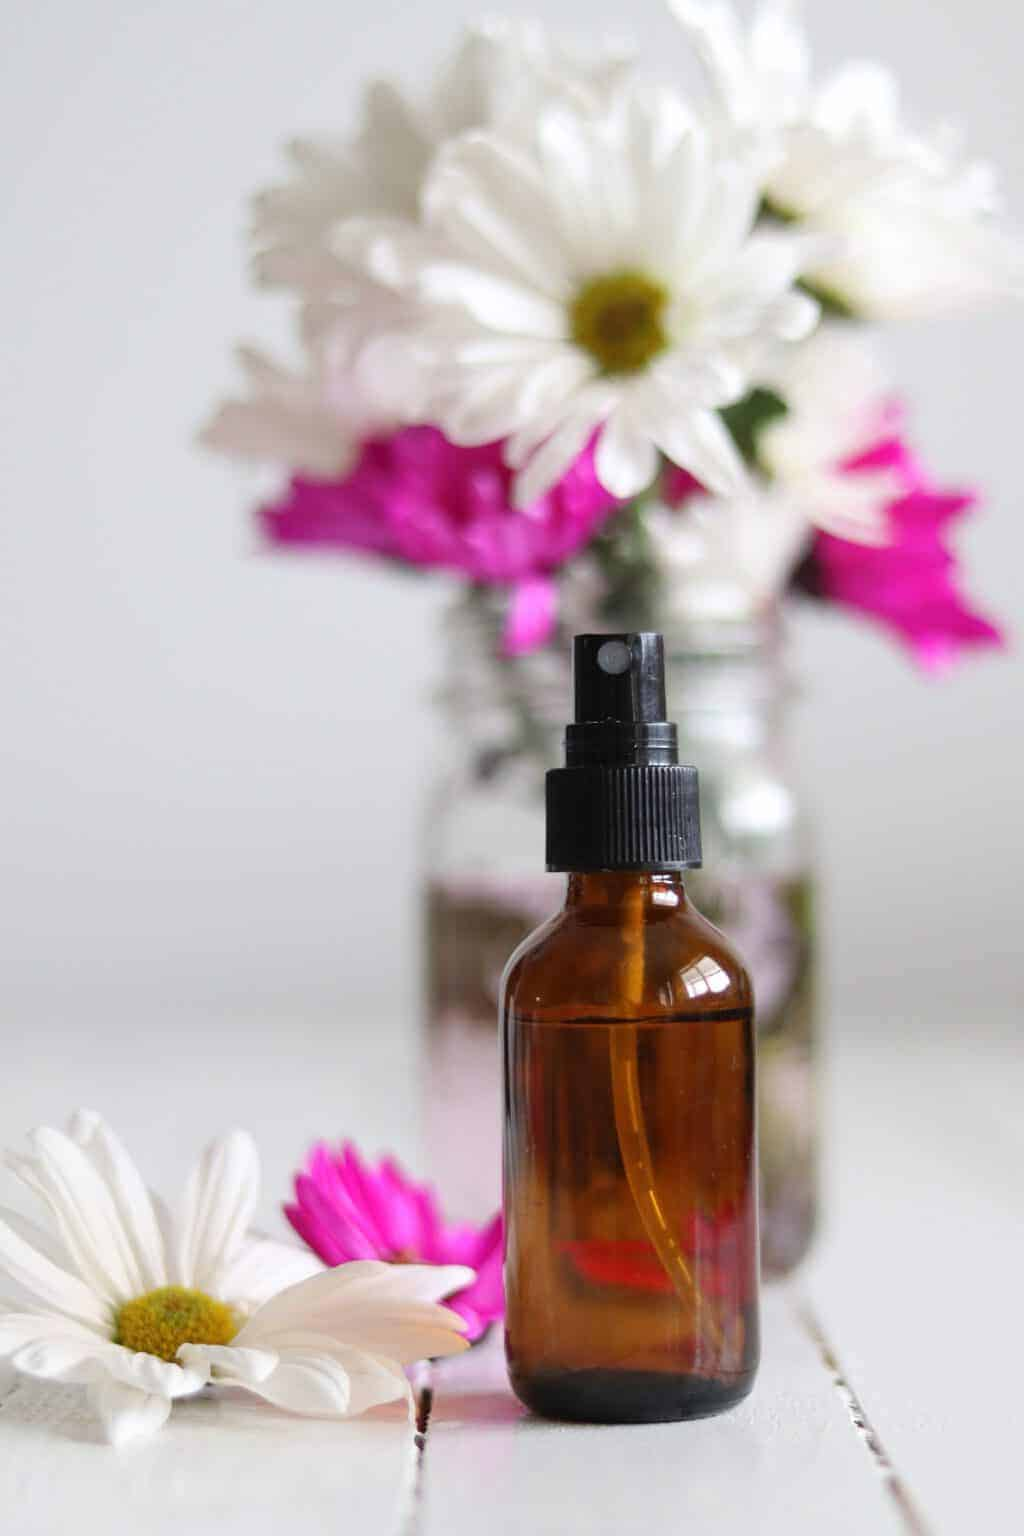 With water, baking soda, and essential oils you can make a DIY room spray that can replace febreze! Try out these 5 essential oil room sprays for spring.